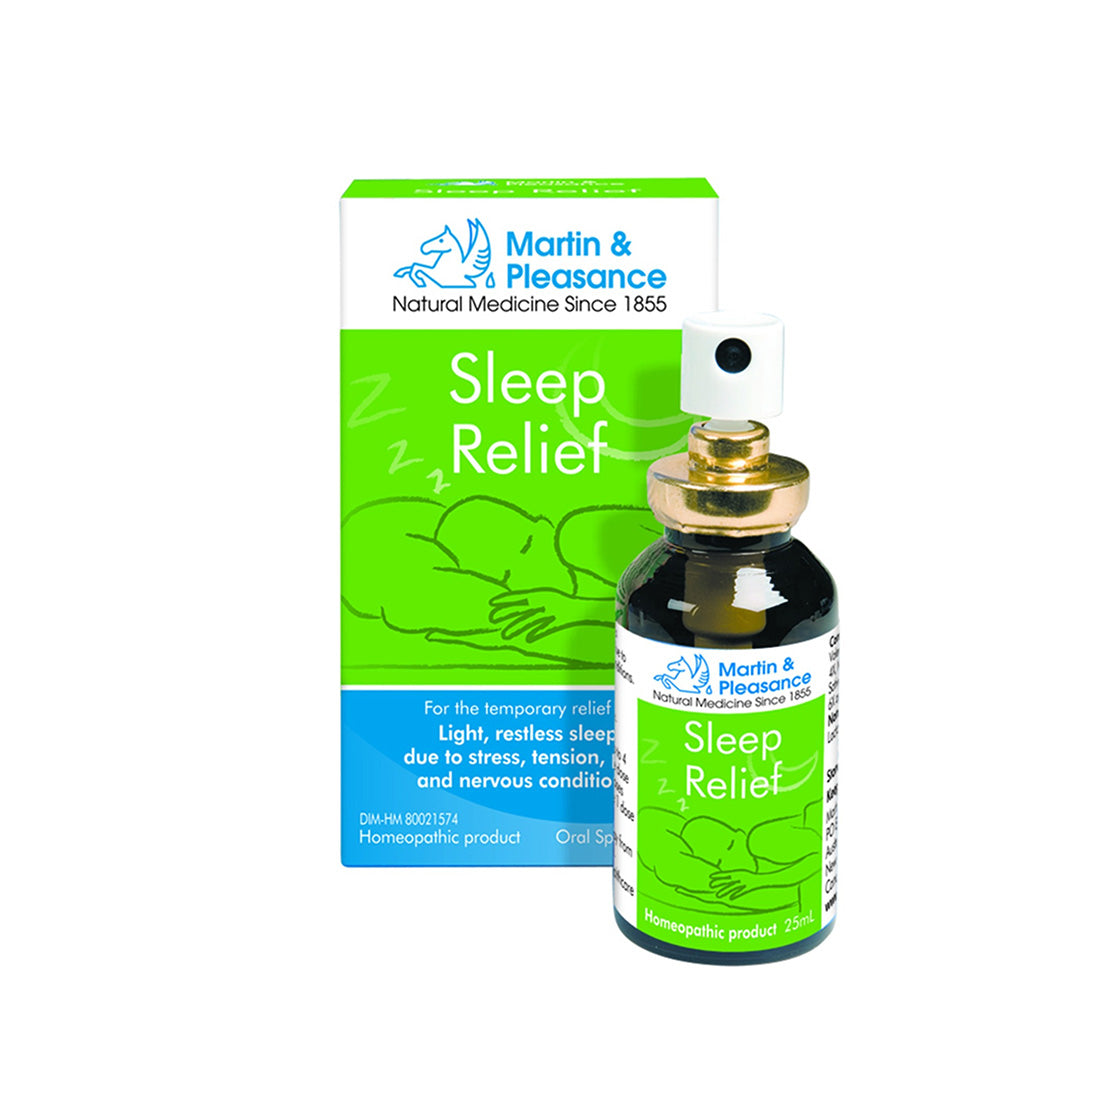 Martin & Pleasance Homeopathic Remedy Sleep Relief Spray 25ml